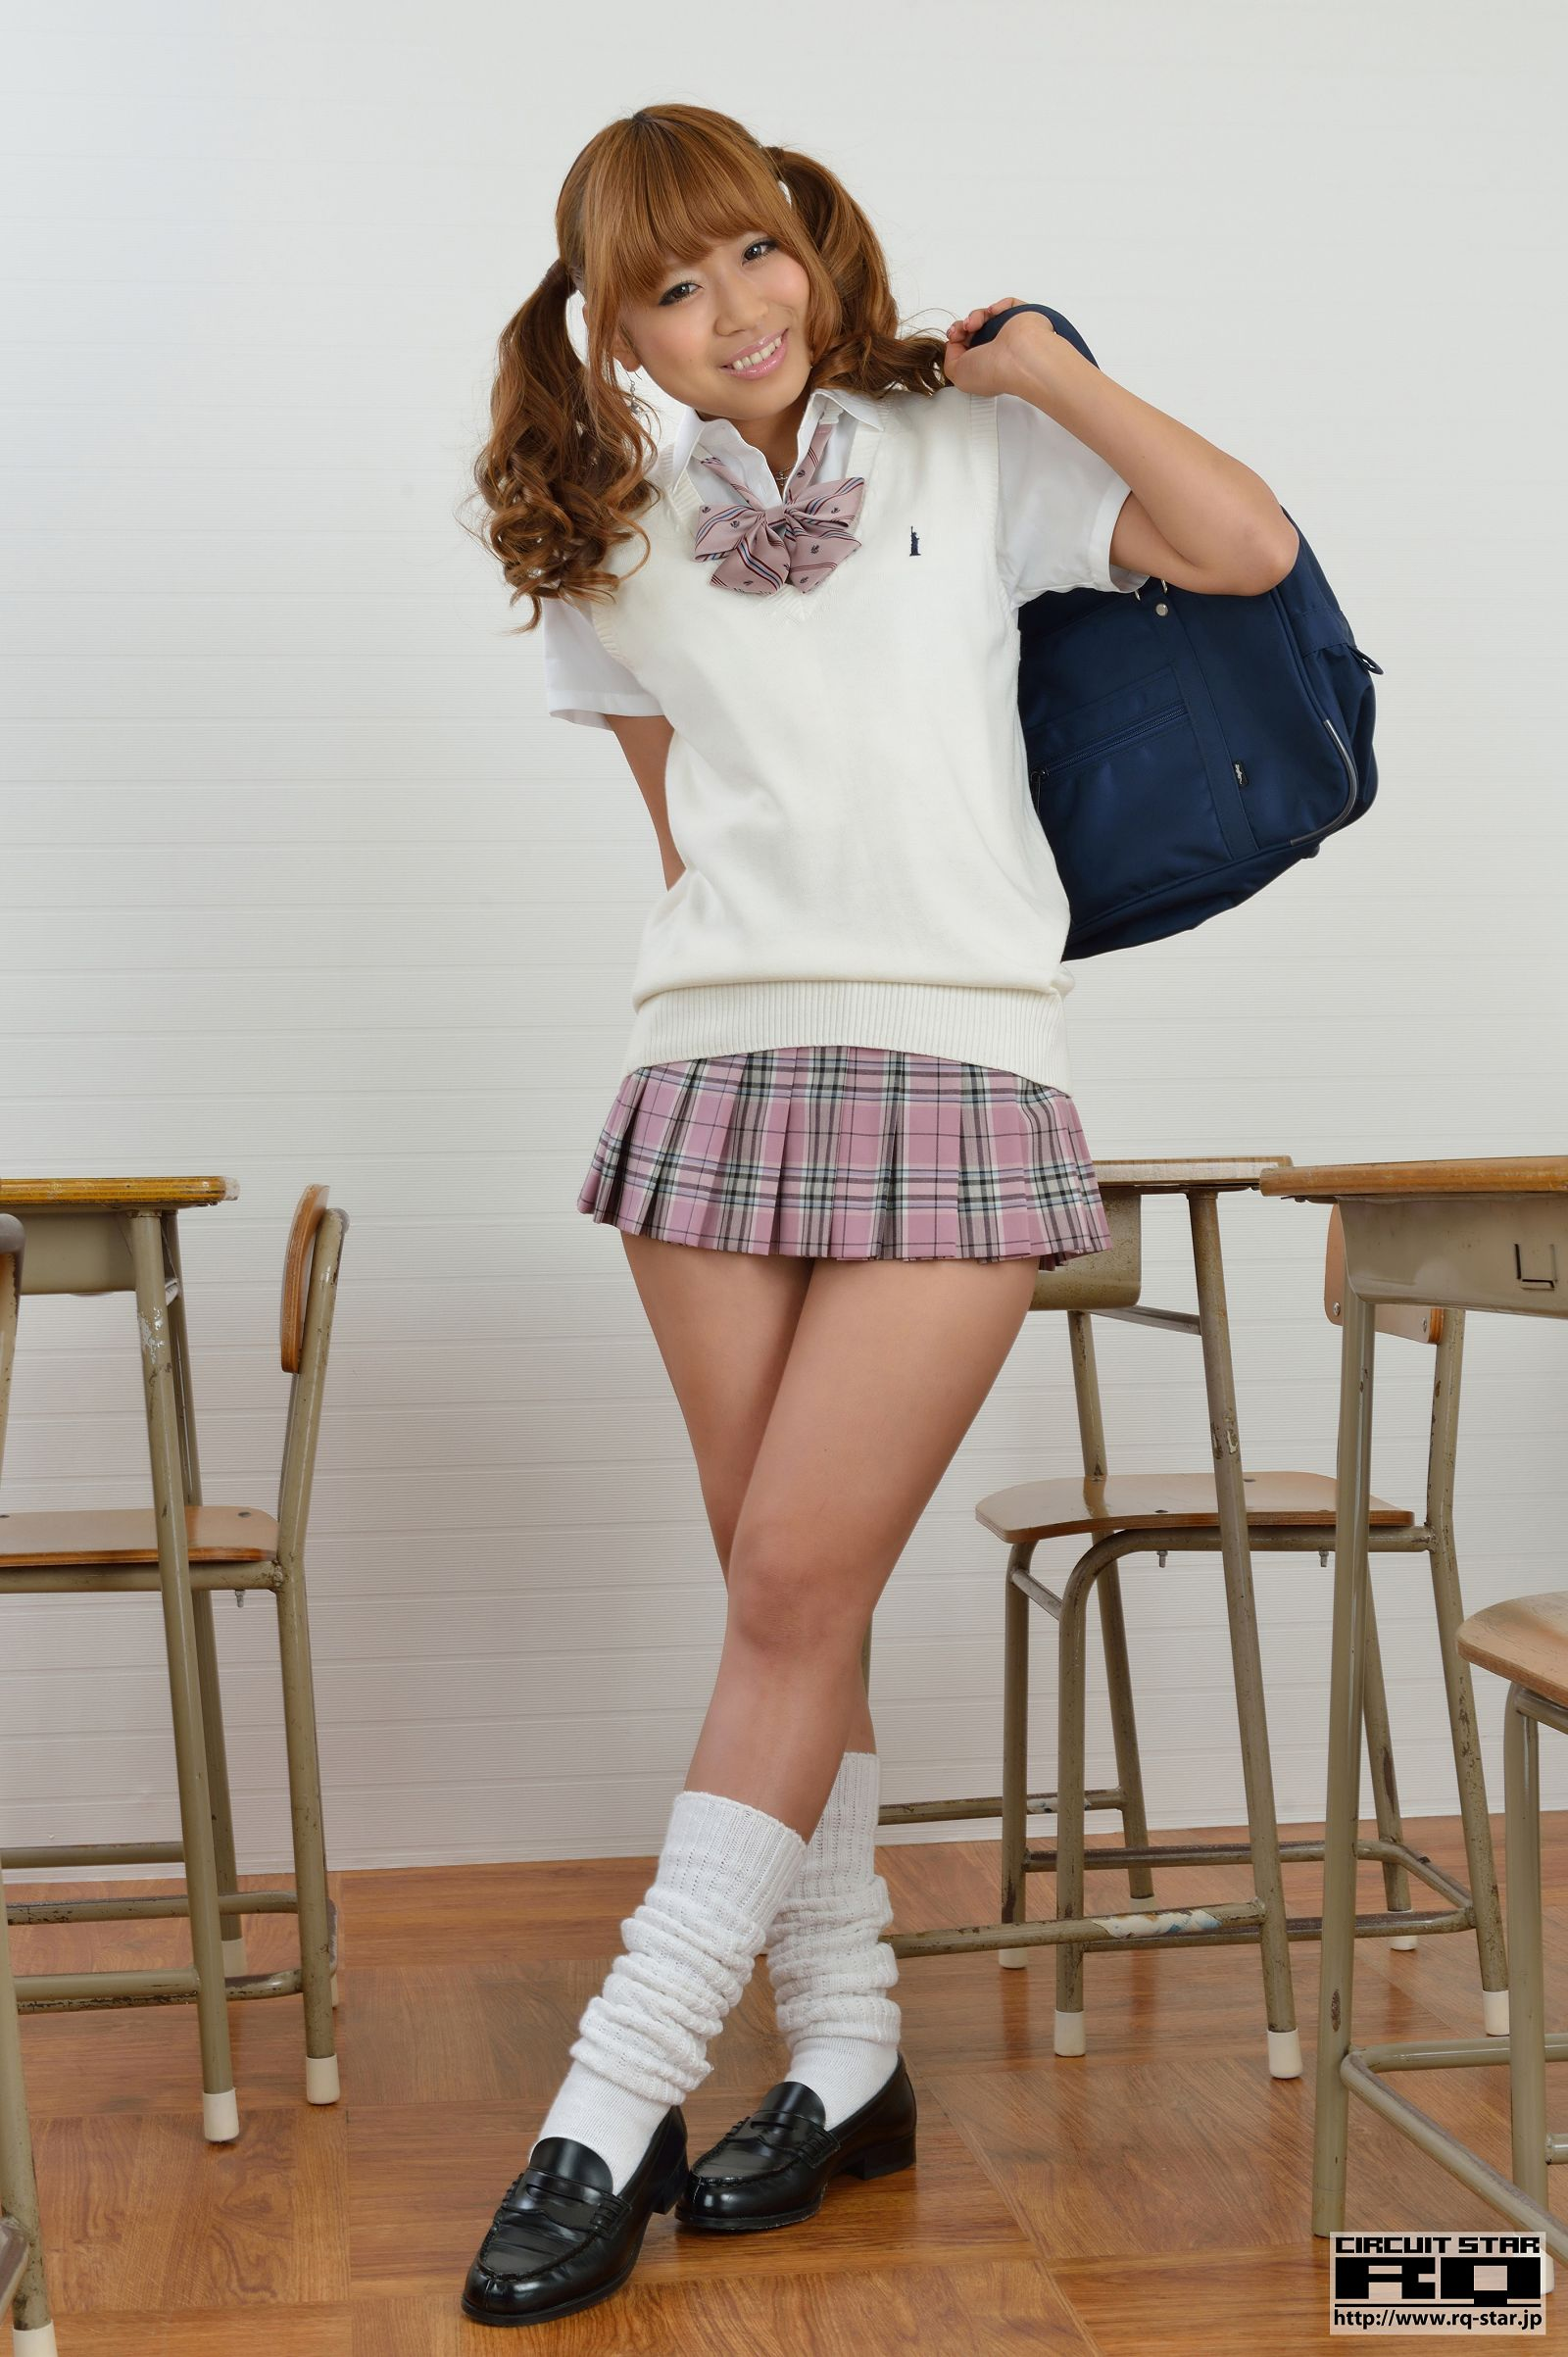 [RQ STAR美女] NO.00679 Rie Takahashi 高橋莉江 School Girl[95P] RQ STAR 第1张